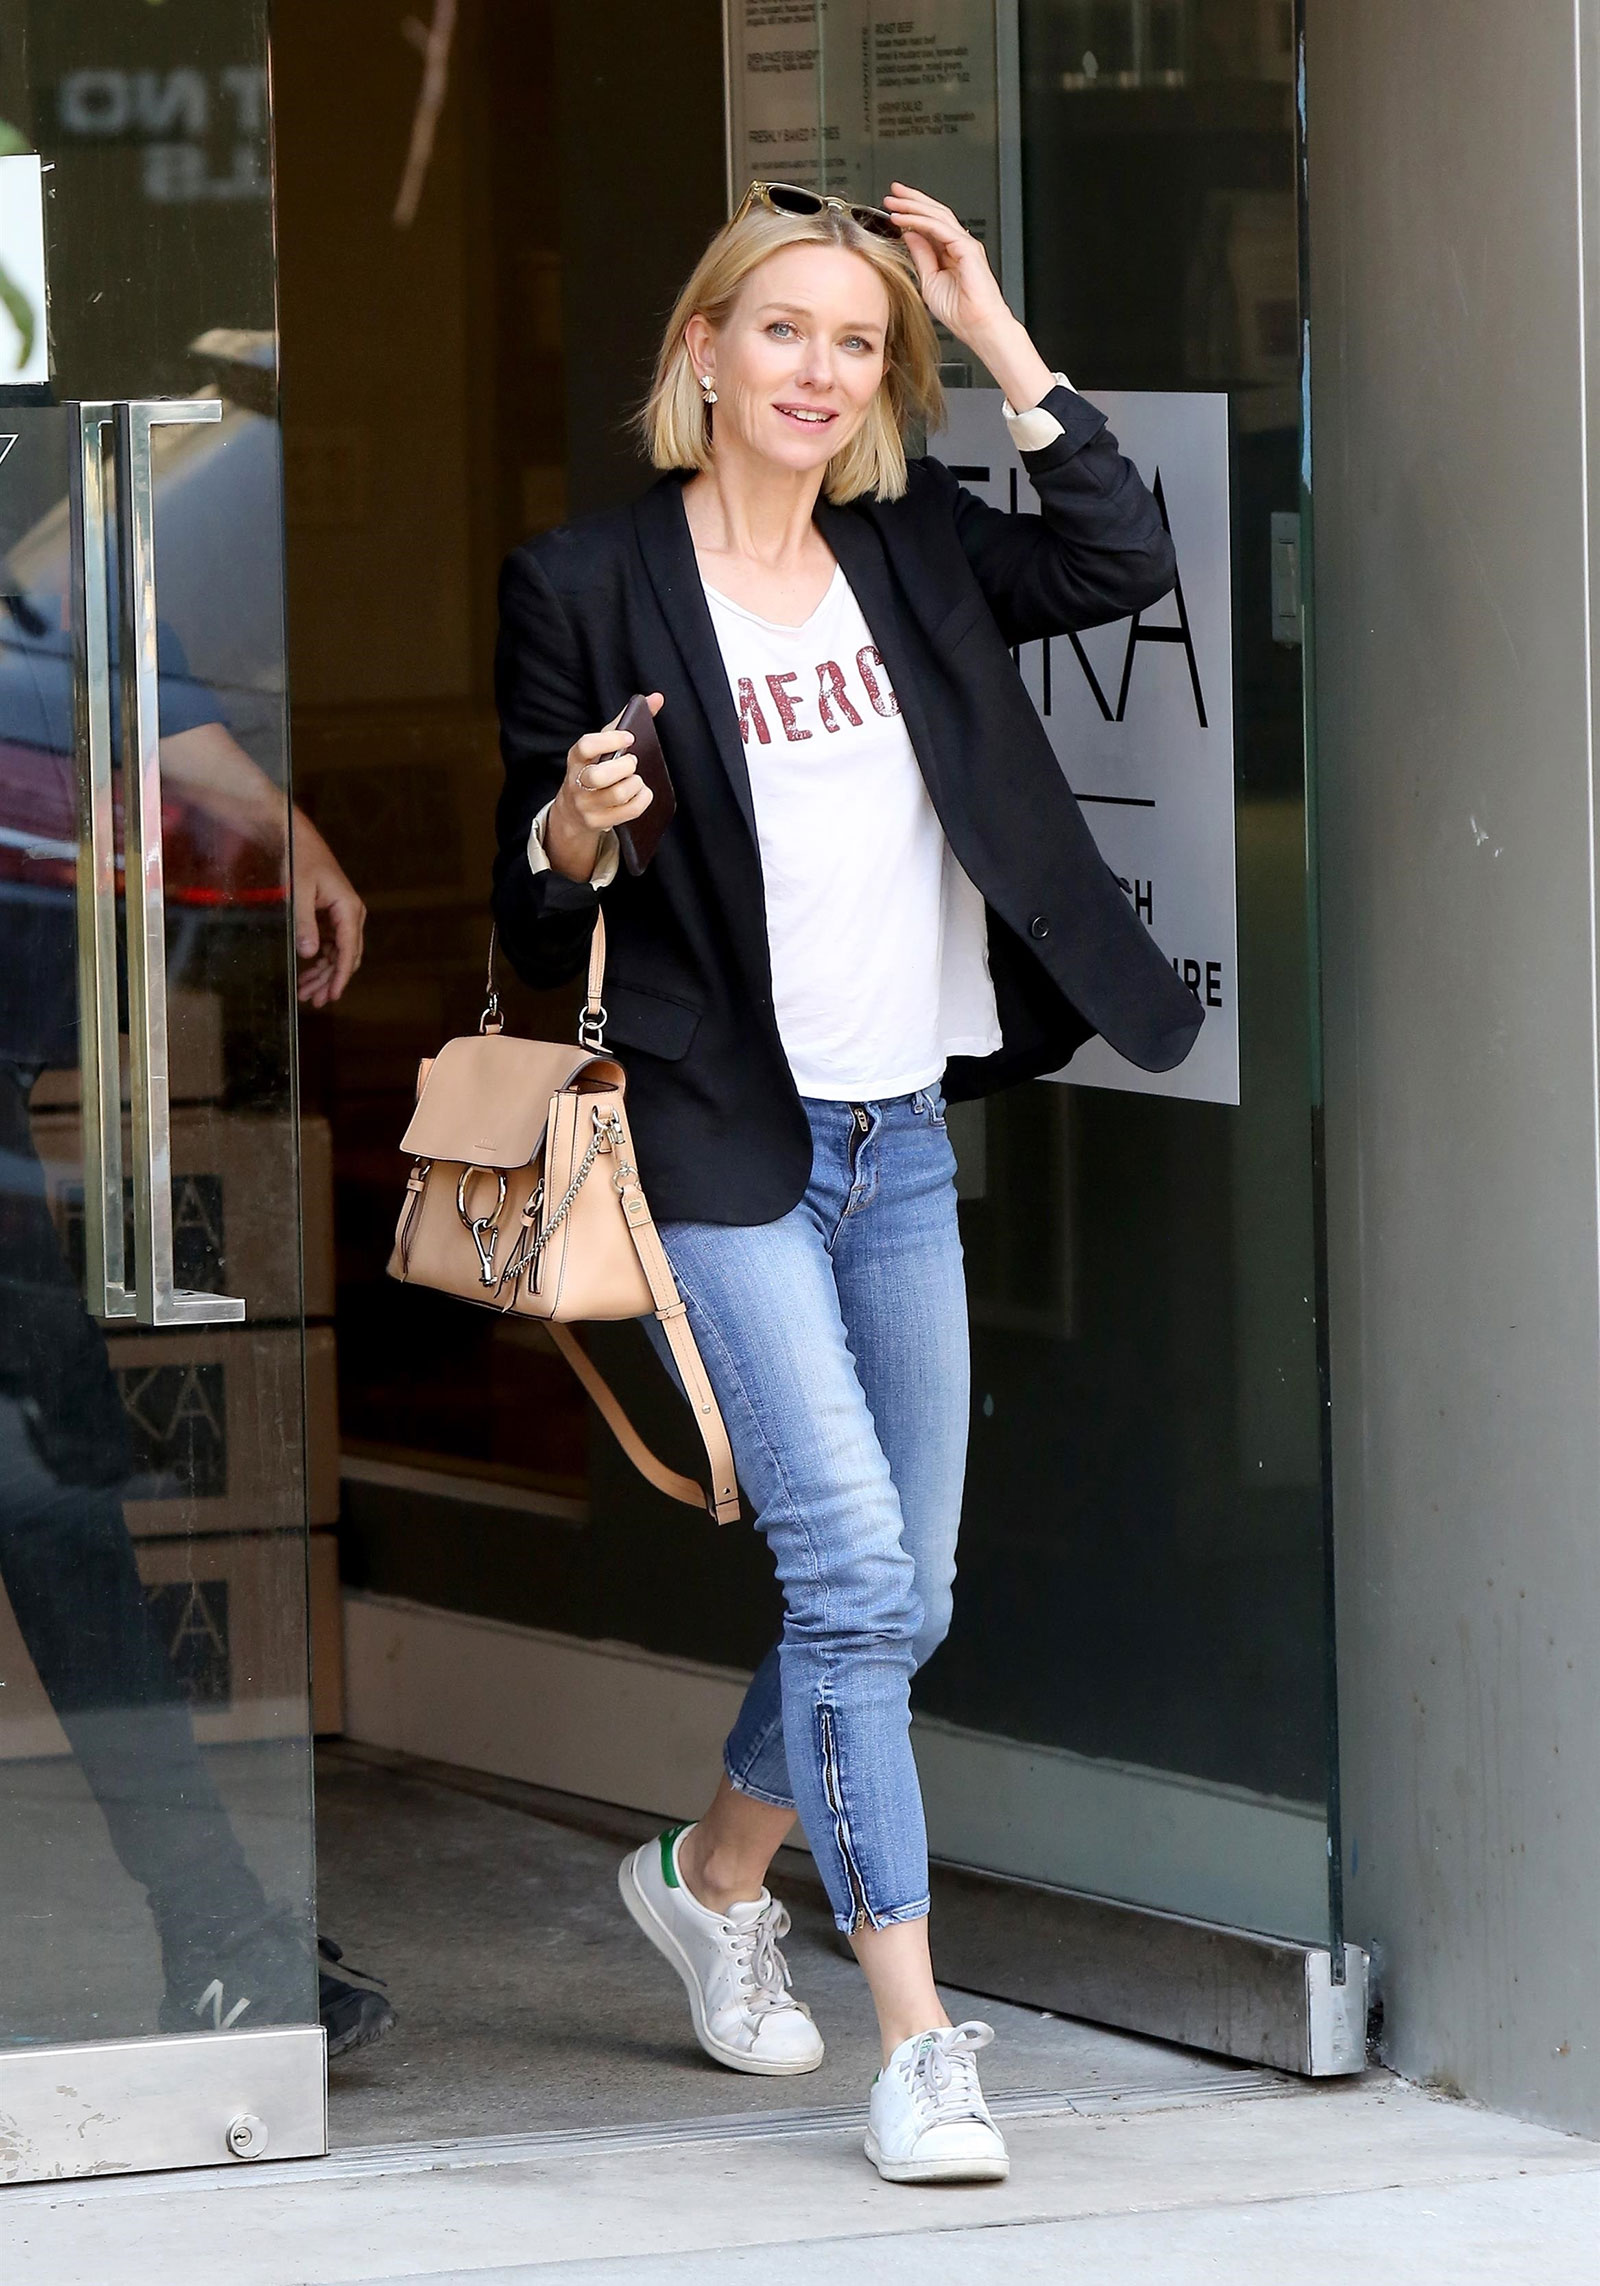 b2b4654fccad6 Naomi Watts looks cool and casual in a blazer, slogan t-shirt and Adidas